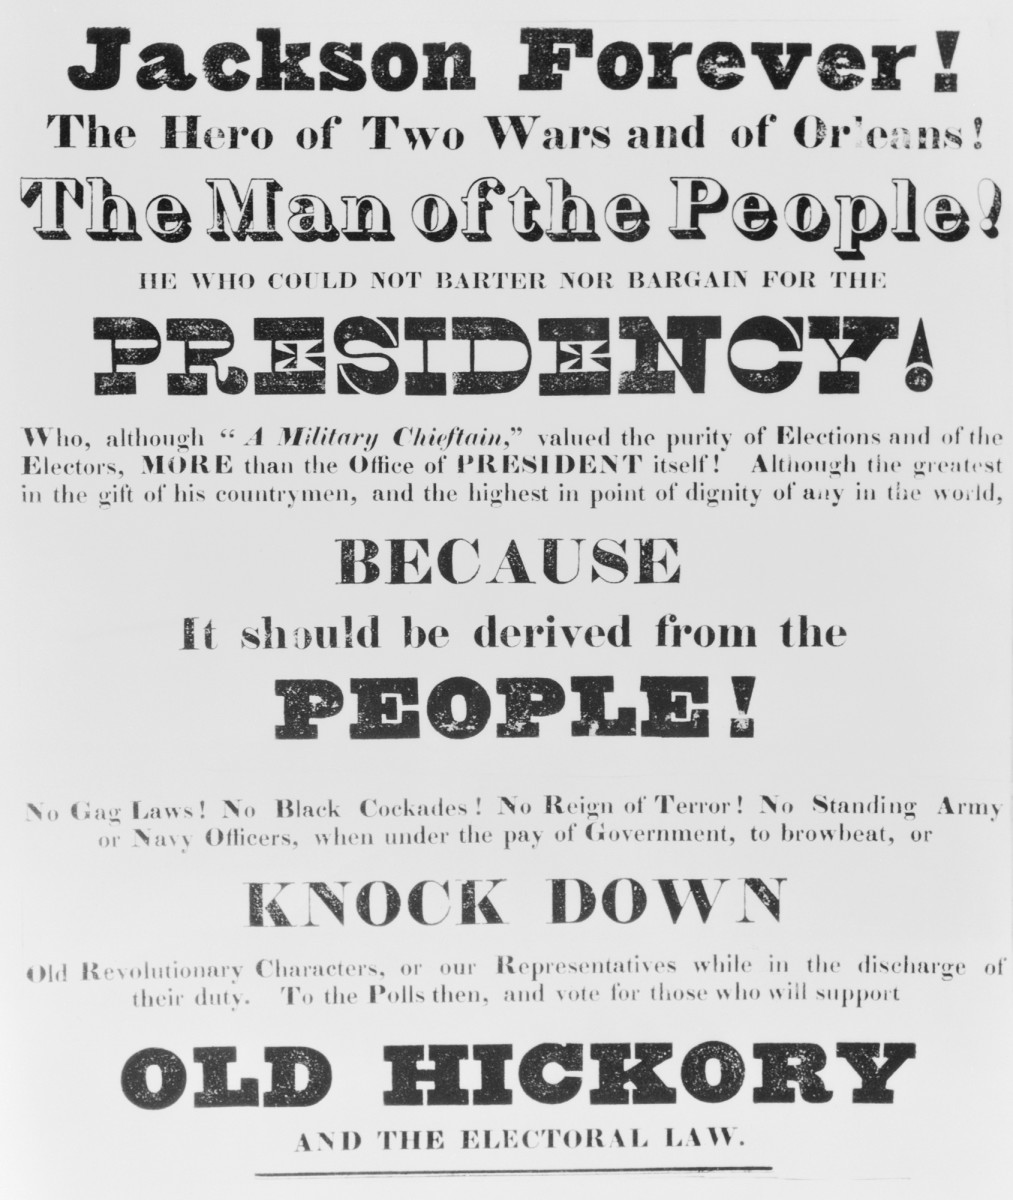 Andrew Jackson's campaign for President